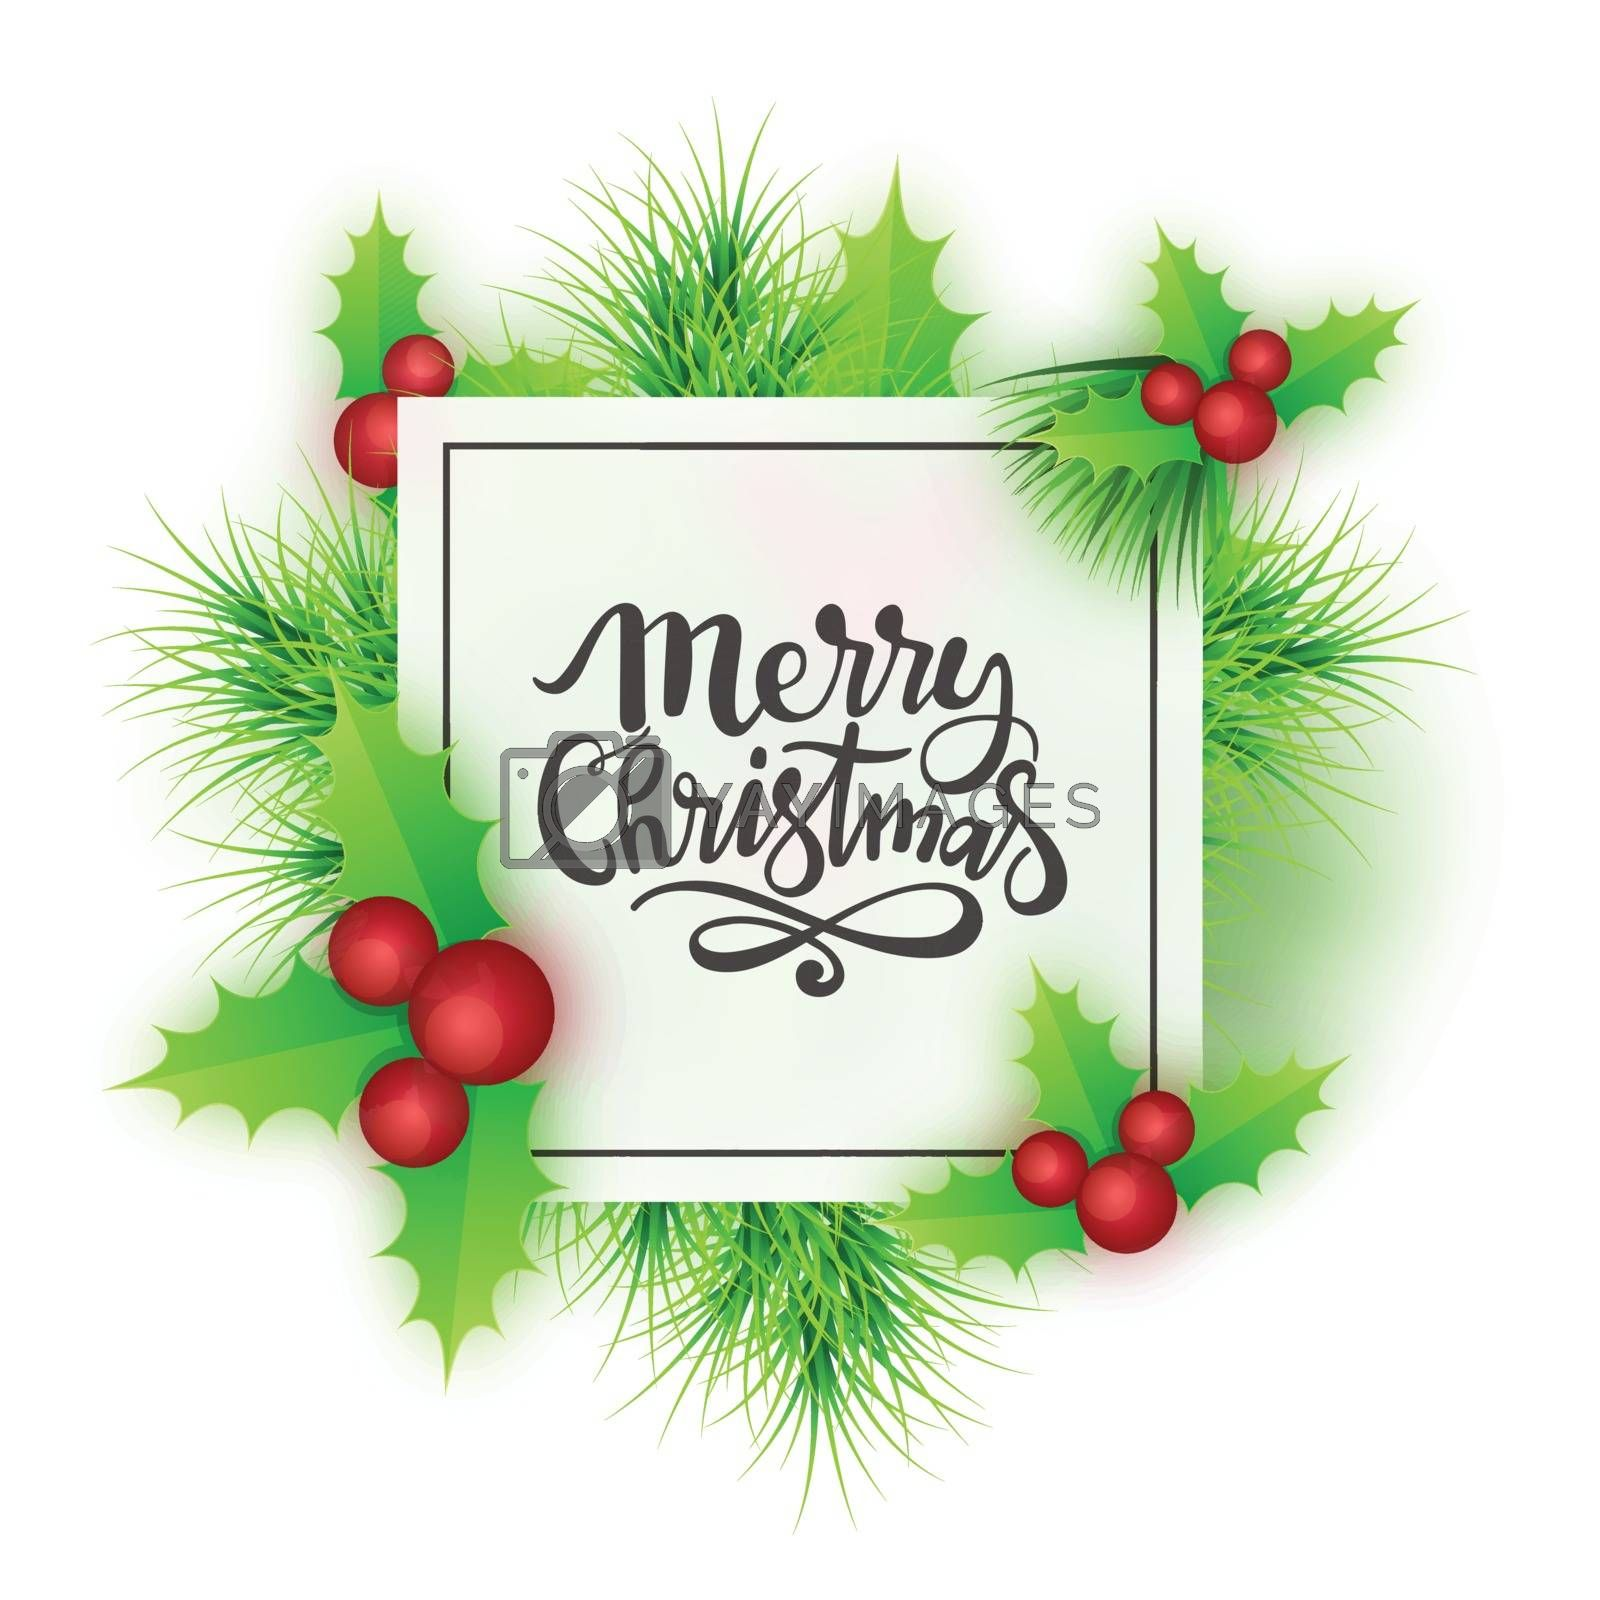 Greeting Card design with Stylish Text Merry Christmas on holly leaves and berries decorated background.